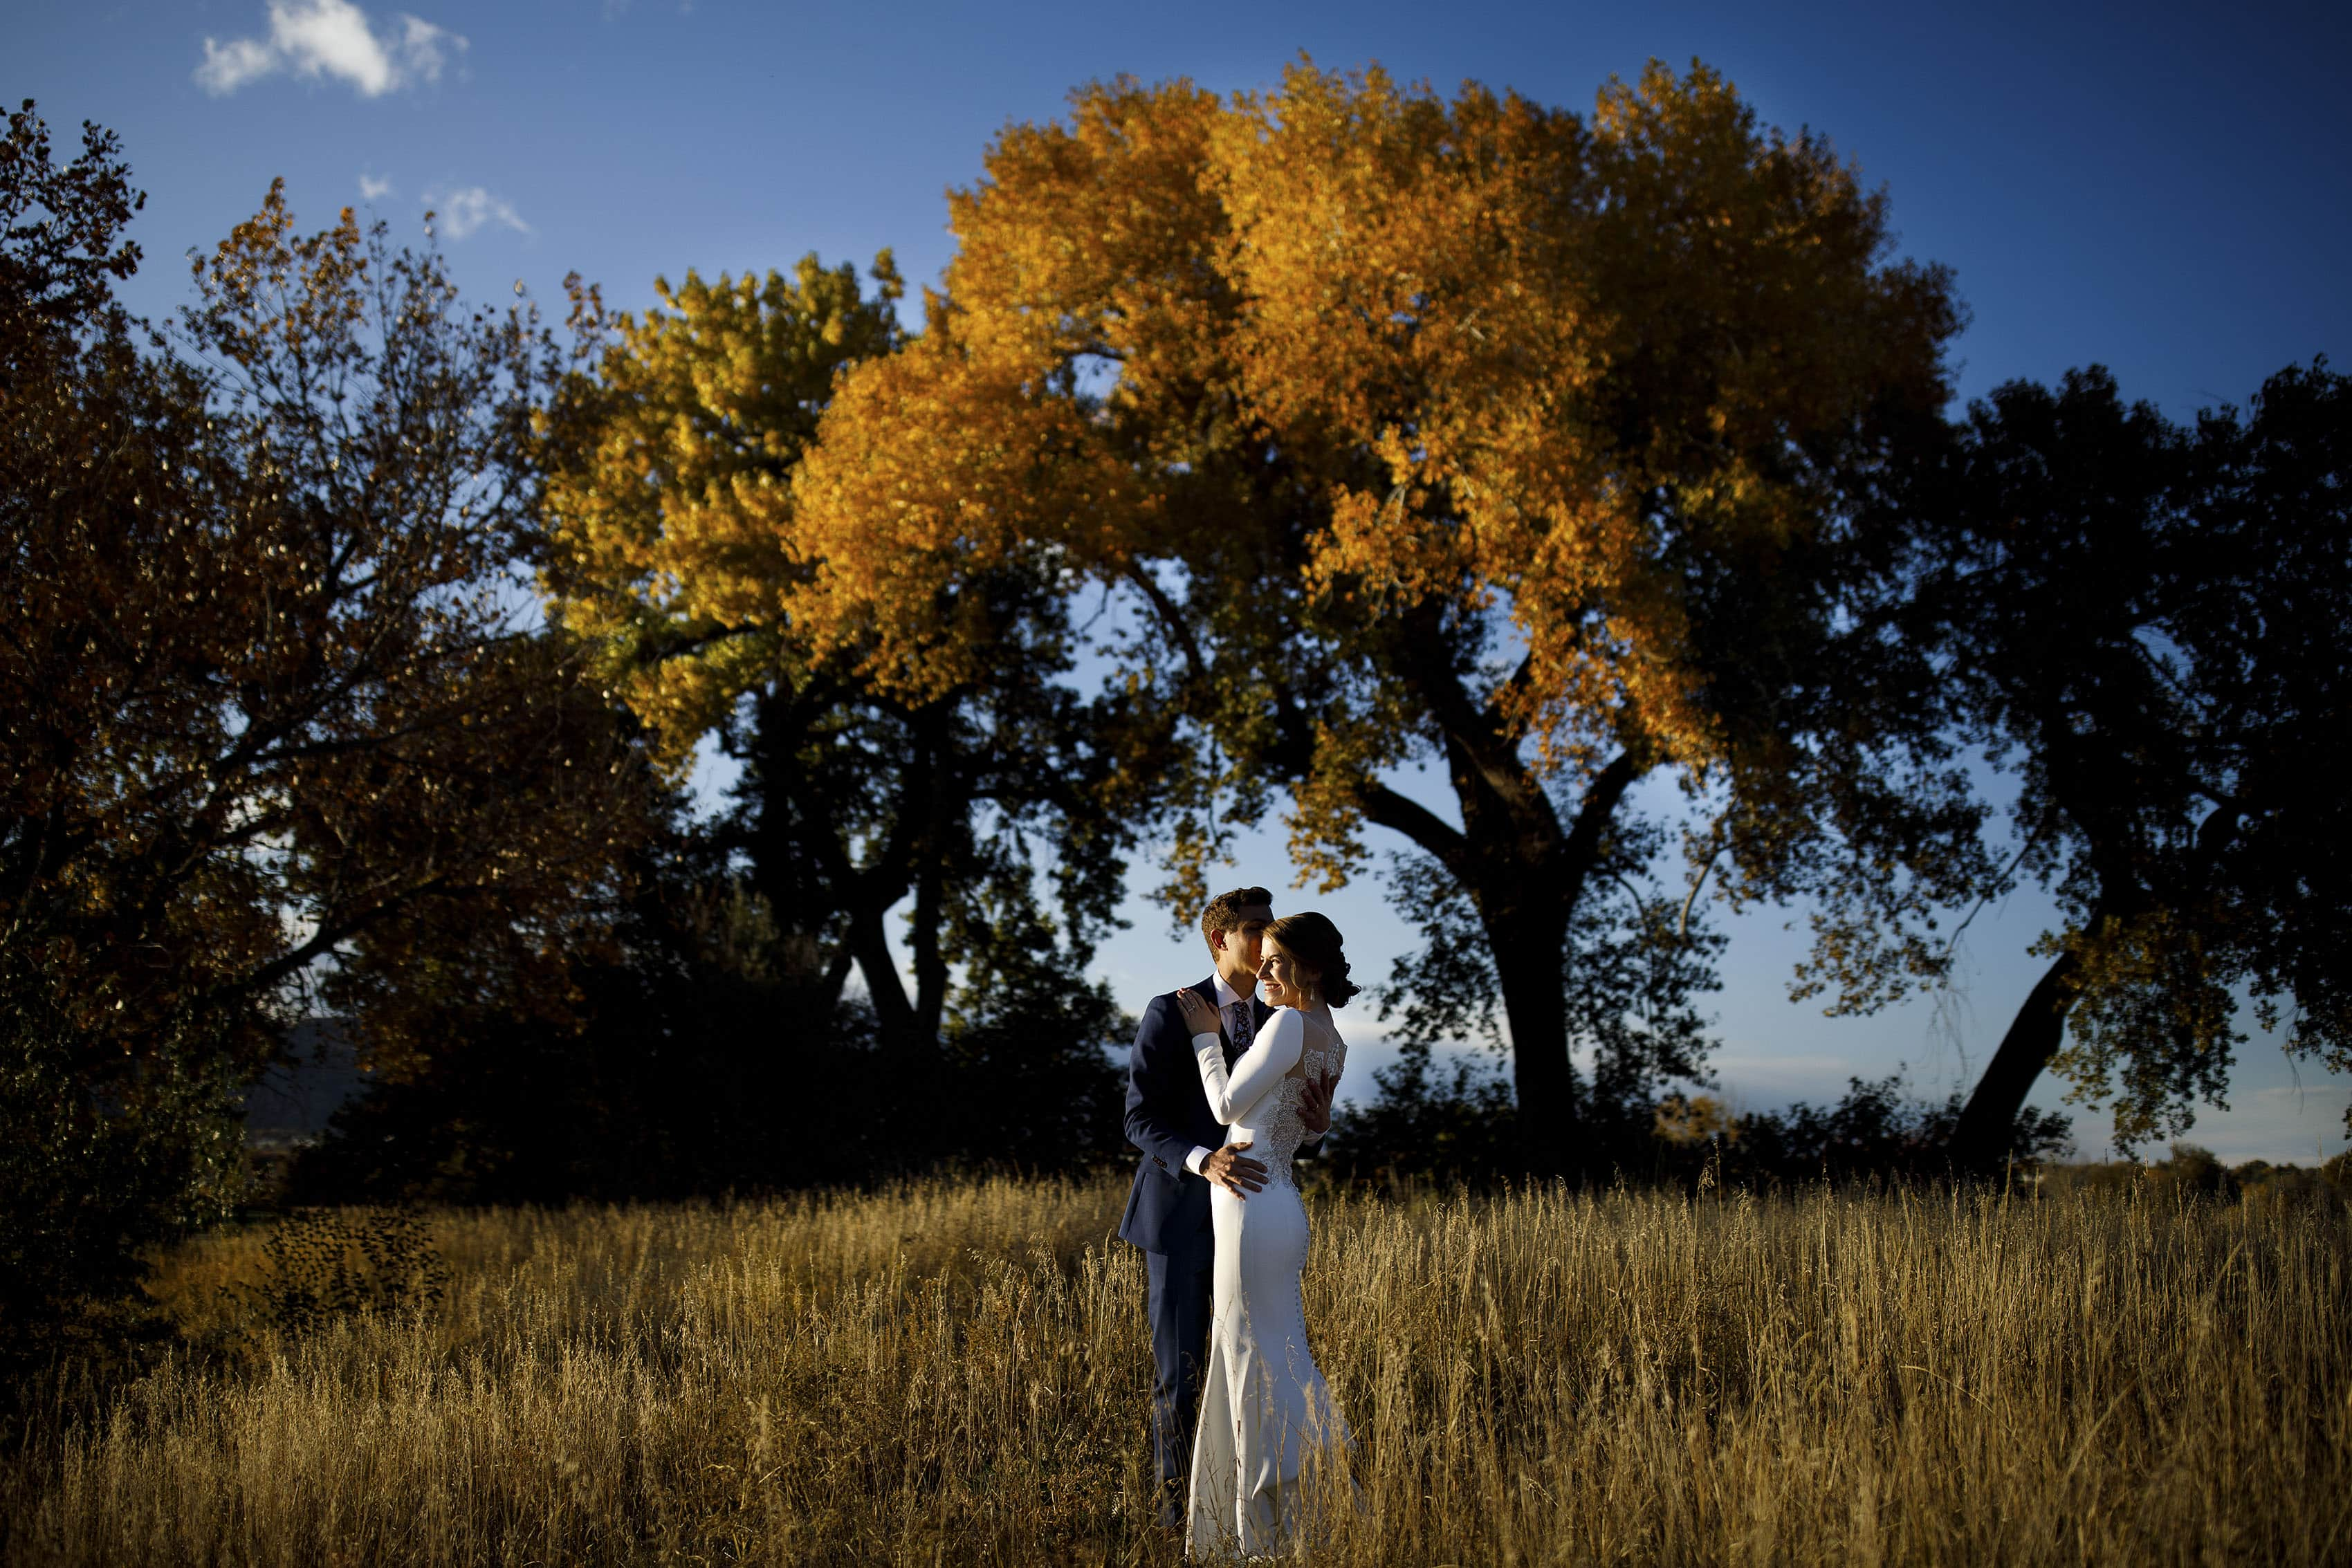 Mike kisses Jessica in a field near a colorful tree during their The Vista at Applewood Golf Course wedding day